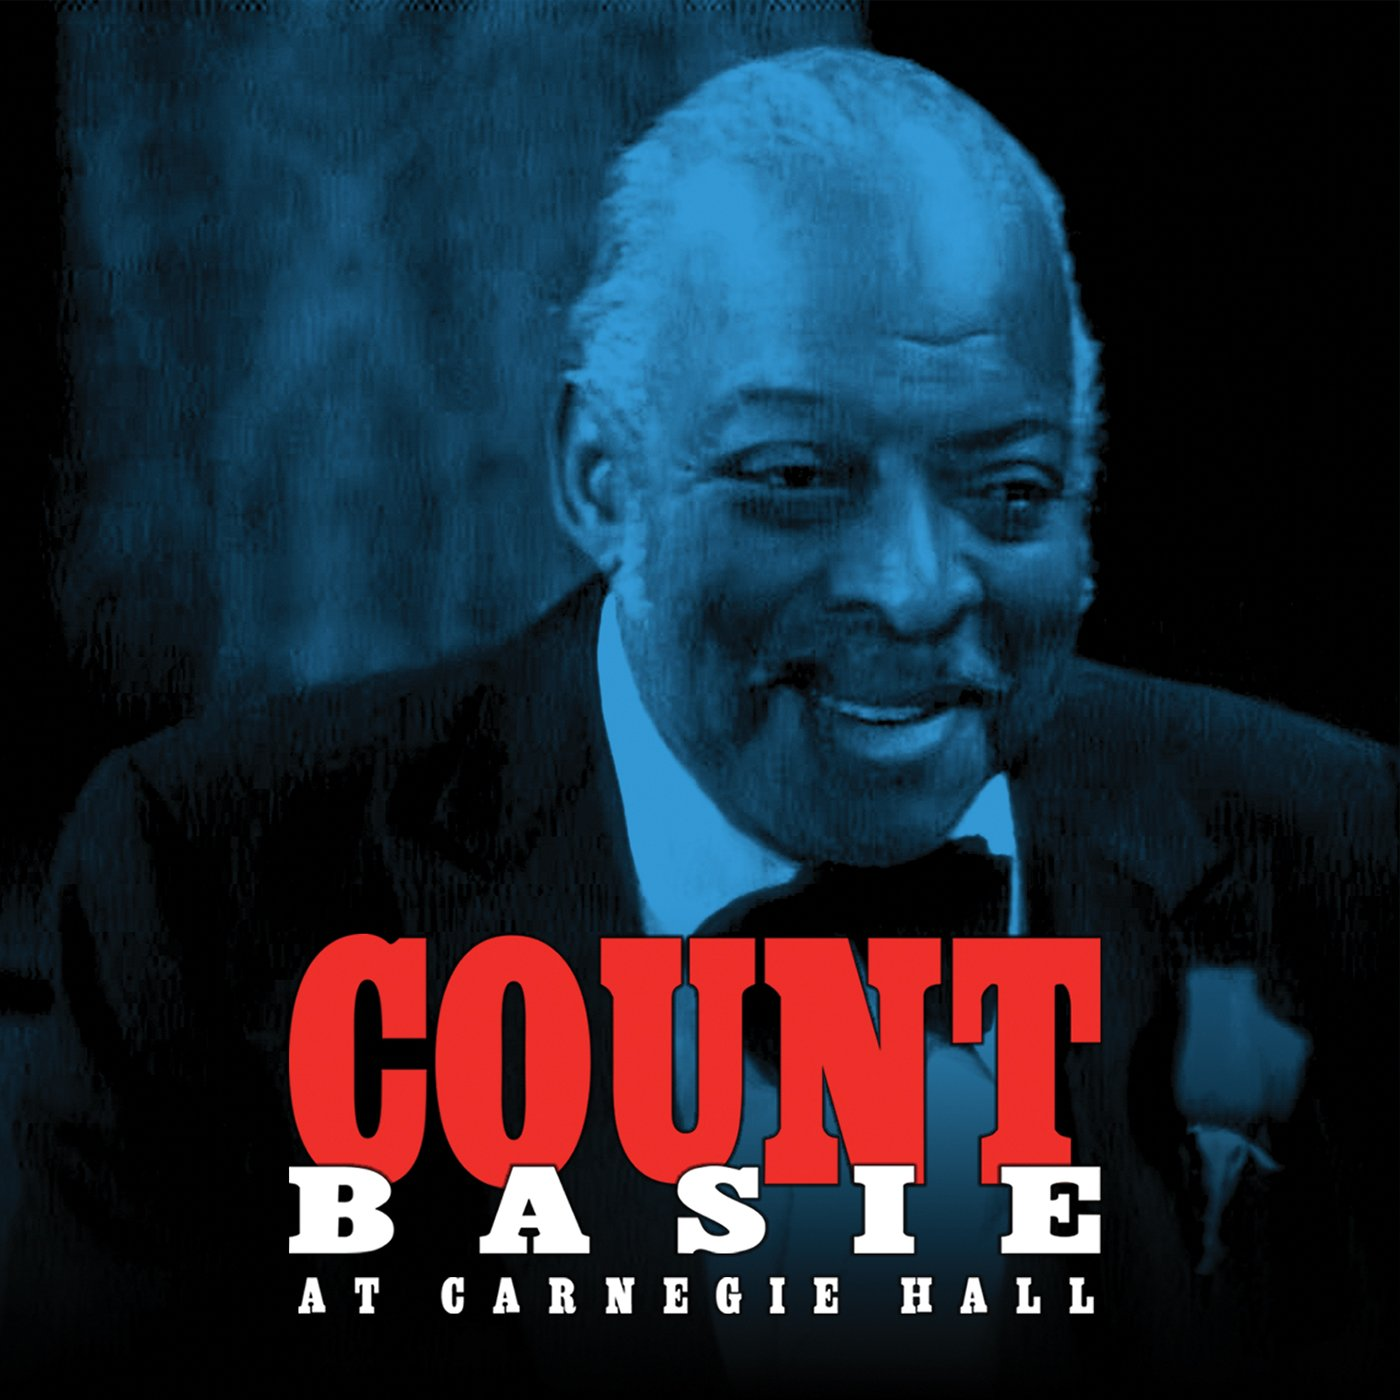 Count Basie At Carnegie Hall by Rockbeat